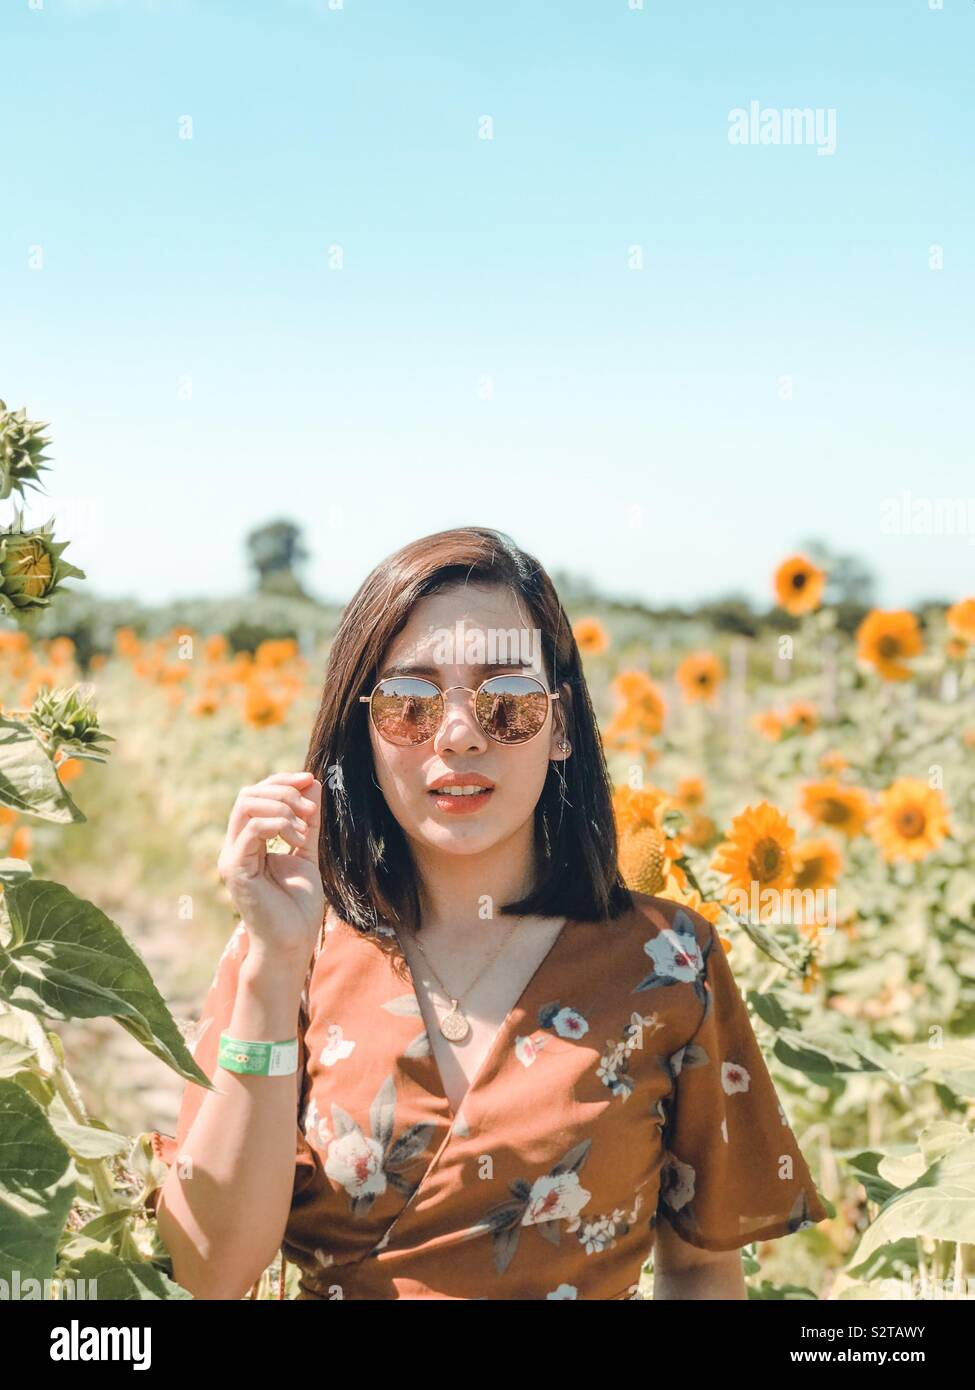 """""""Even on the darkest days, I will stand tall and find the sunlight."""" 🌻 Stock Photo"""